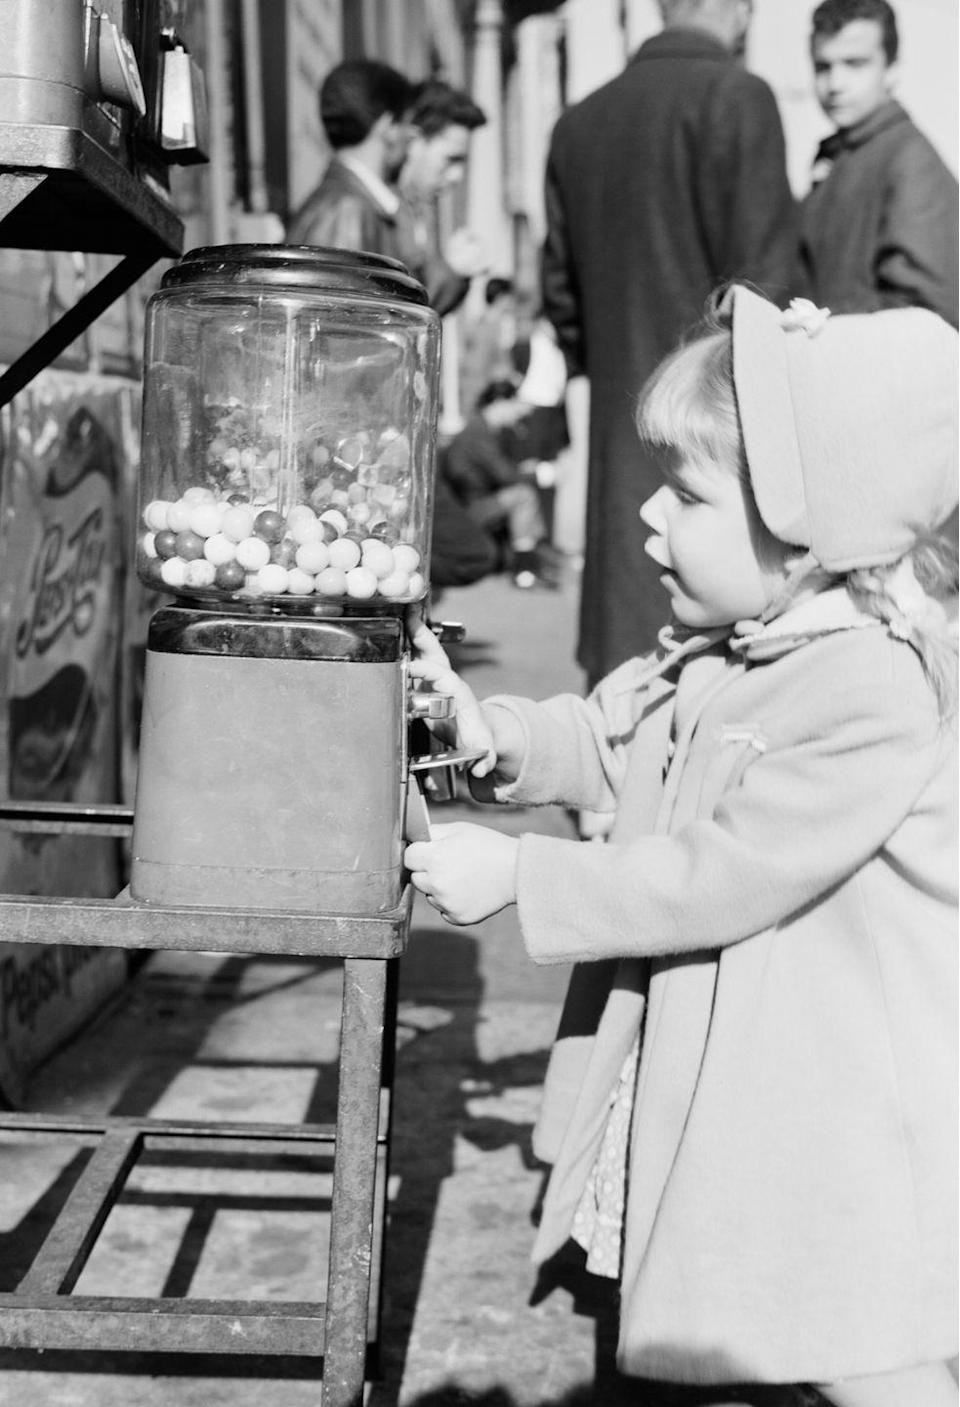 <p>Sugary gum and candy were a '60s childhood staple. And blowing bubbles so big they break over your nose was a big thing. Sometimes kids had bubble blowing contests. The bubble would break and you'd start on a new piece. Gum was not allowed in school but you'd sneak it in anyway, and if you brought enough for other kids you'd make new friends for life. Cavities ensued!<br></p>